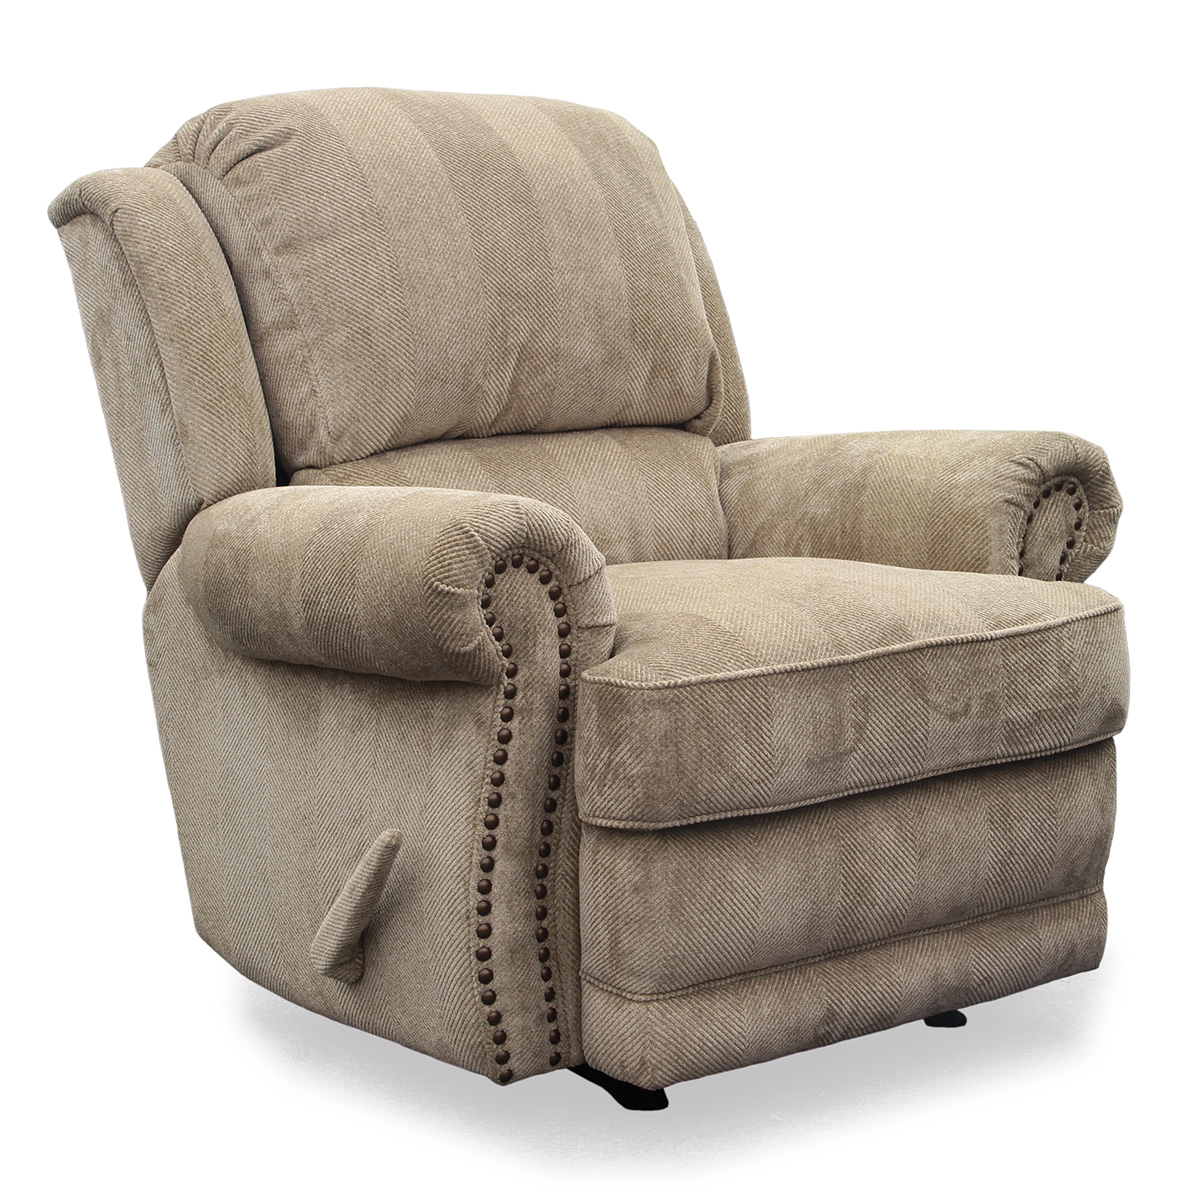 Regency Recliner in Odyssey Cashmere Chenille Fabric  sc 1 st  Dynamic Home Decor & BarcaLounger 6-5733-1070-83 Regency Recliner in Odyssey Cashmere ... islam-shia.org